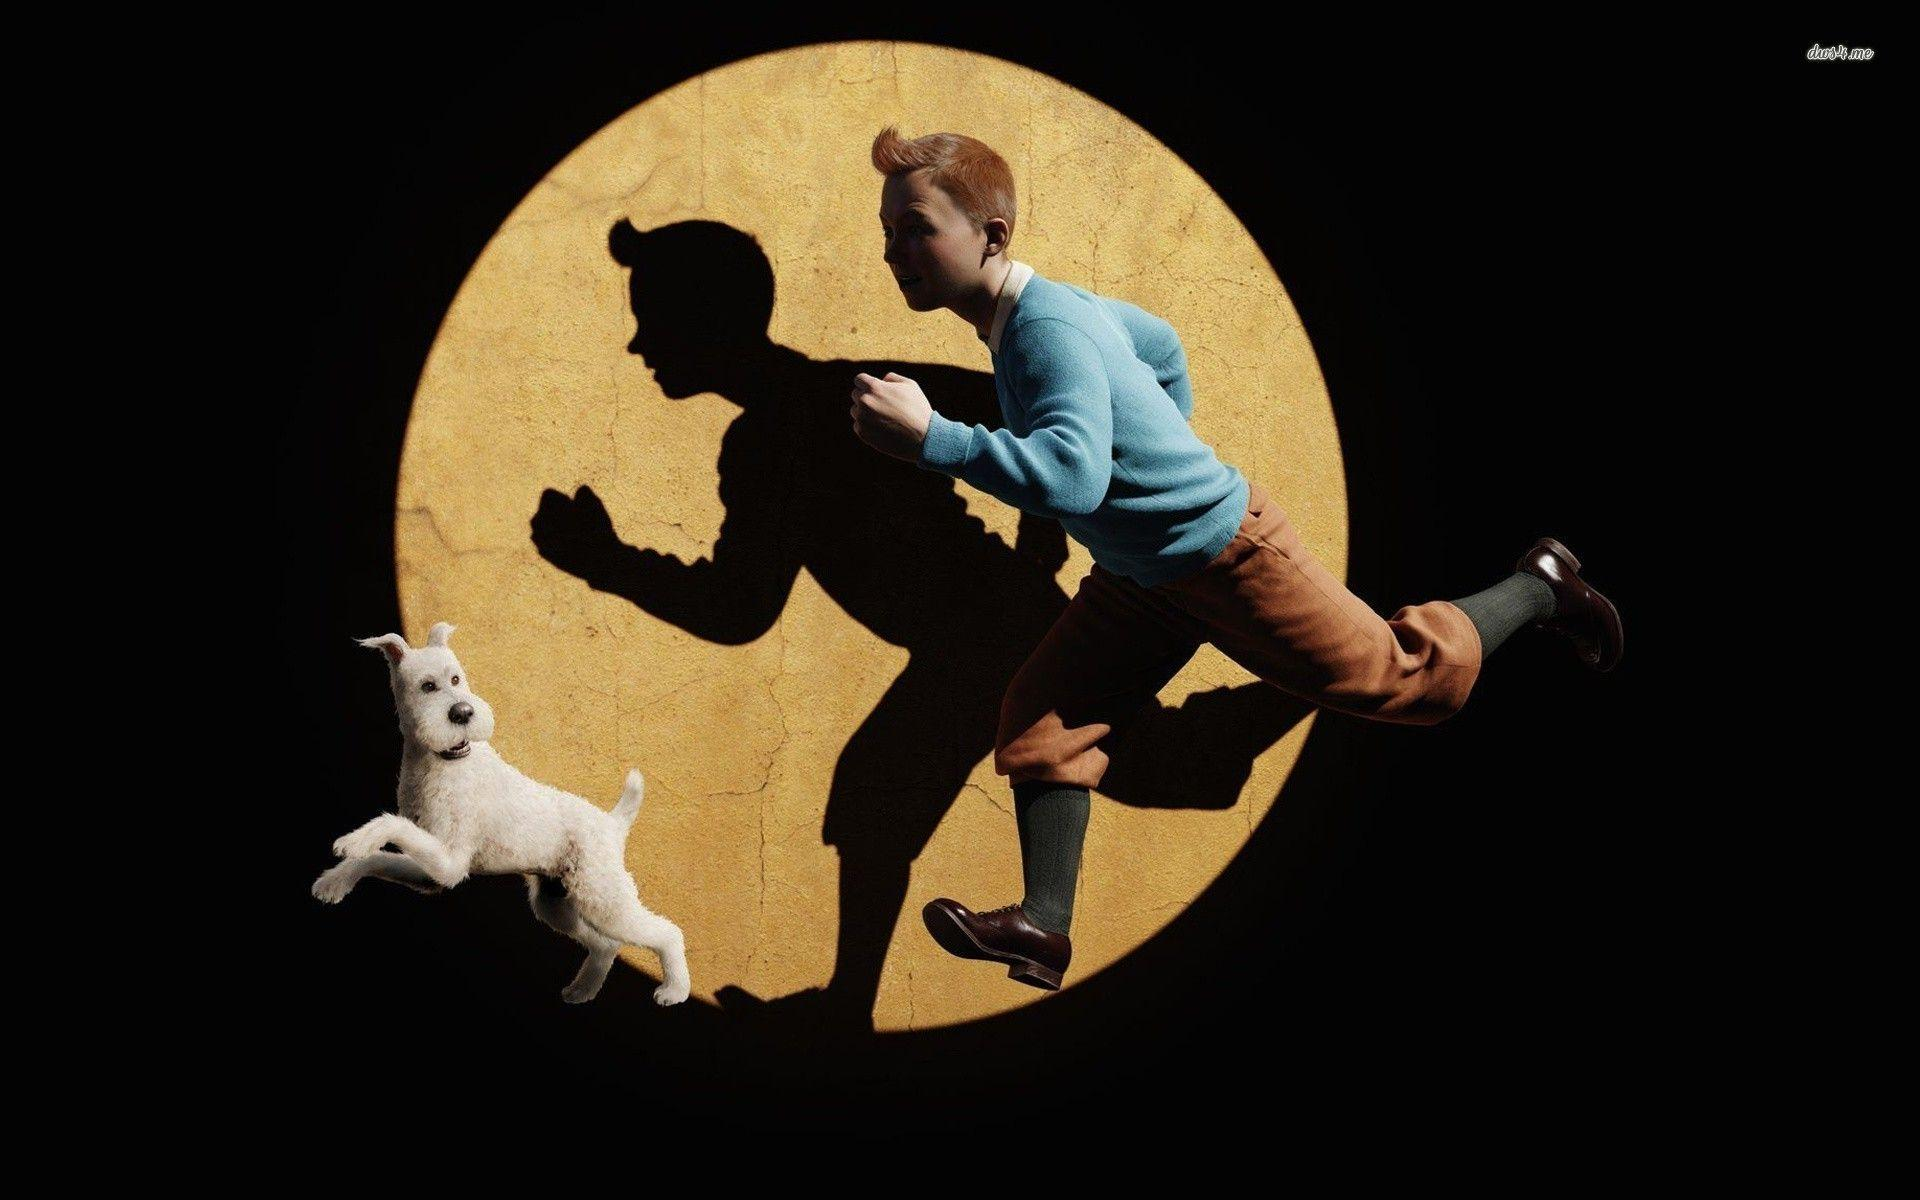 tintin and snowy wallpaper - photo #7